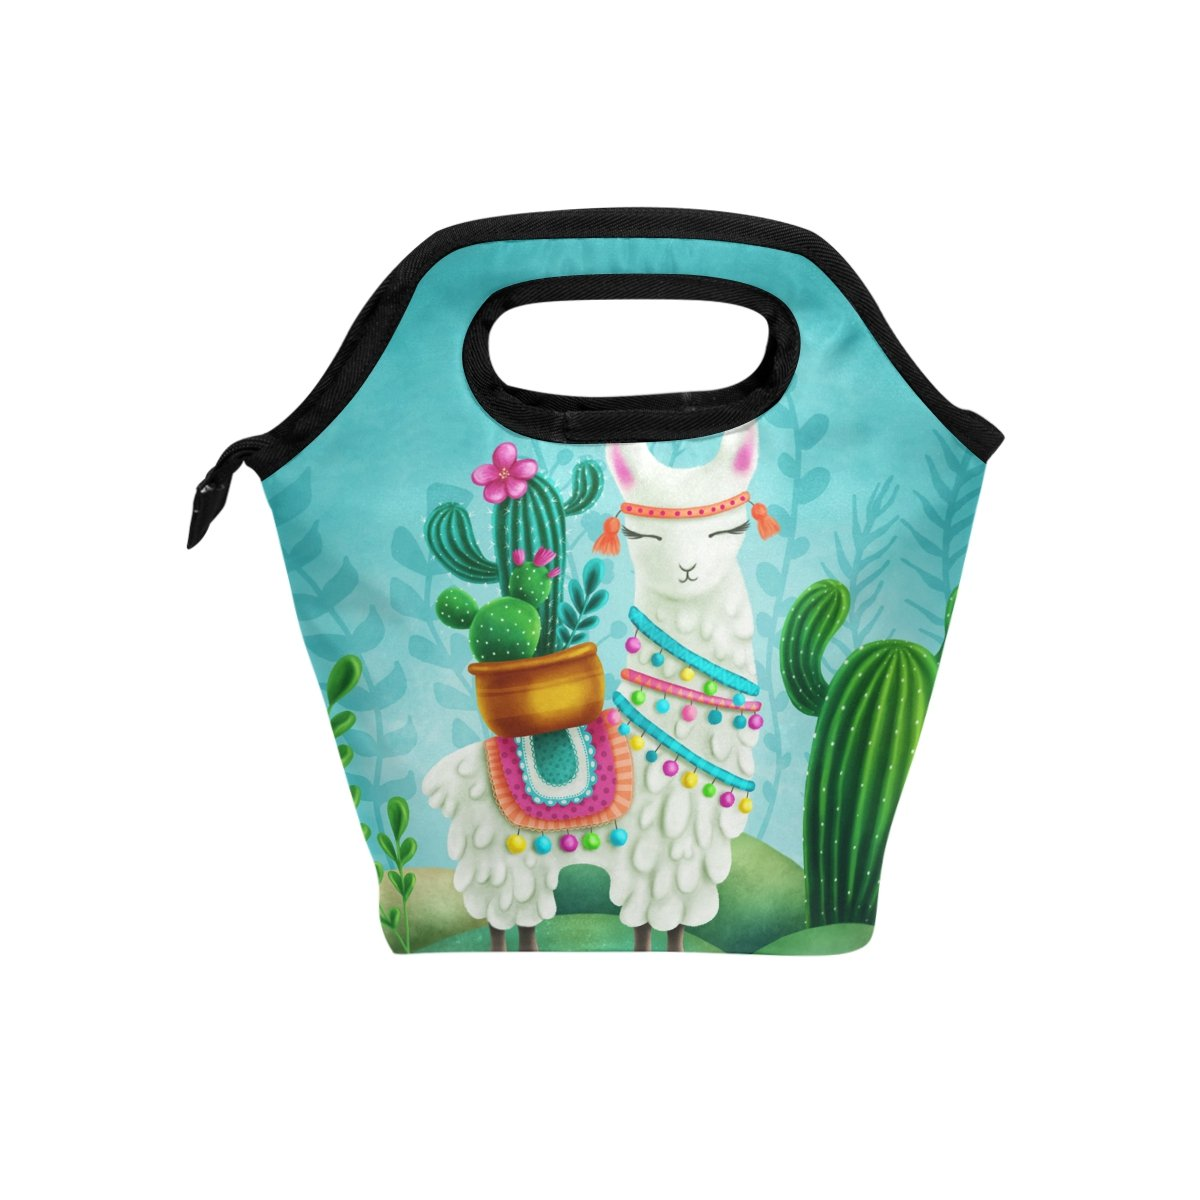 Naanle American Animal Alpaca with Cactus Insulated Zipper Lunch Bag Cooler Tote Bag for Adult Teens Kids Girls Boys Men Women, Llama Lunch Boxes Lunchboxes Meal Prep Handbag for School Office